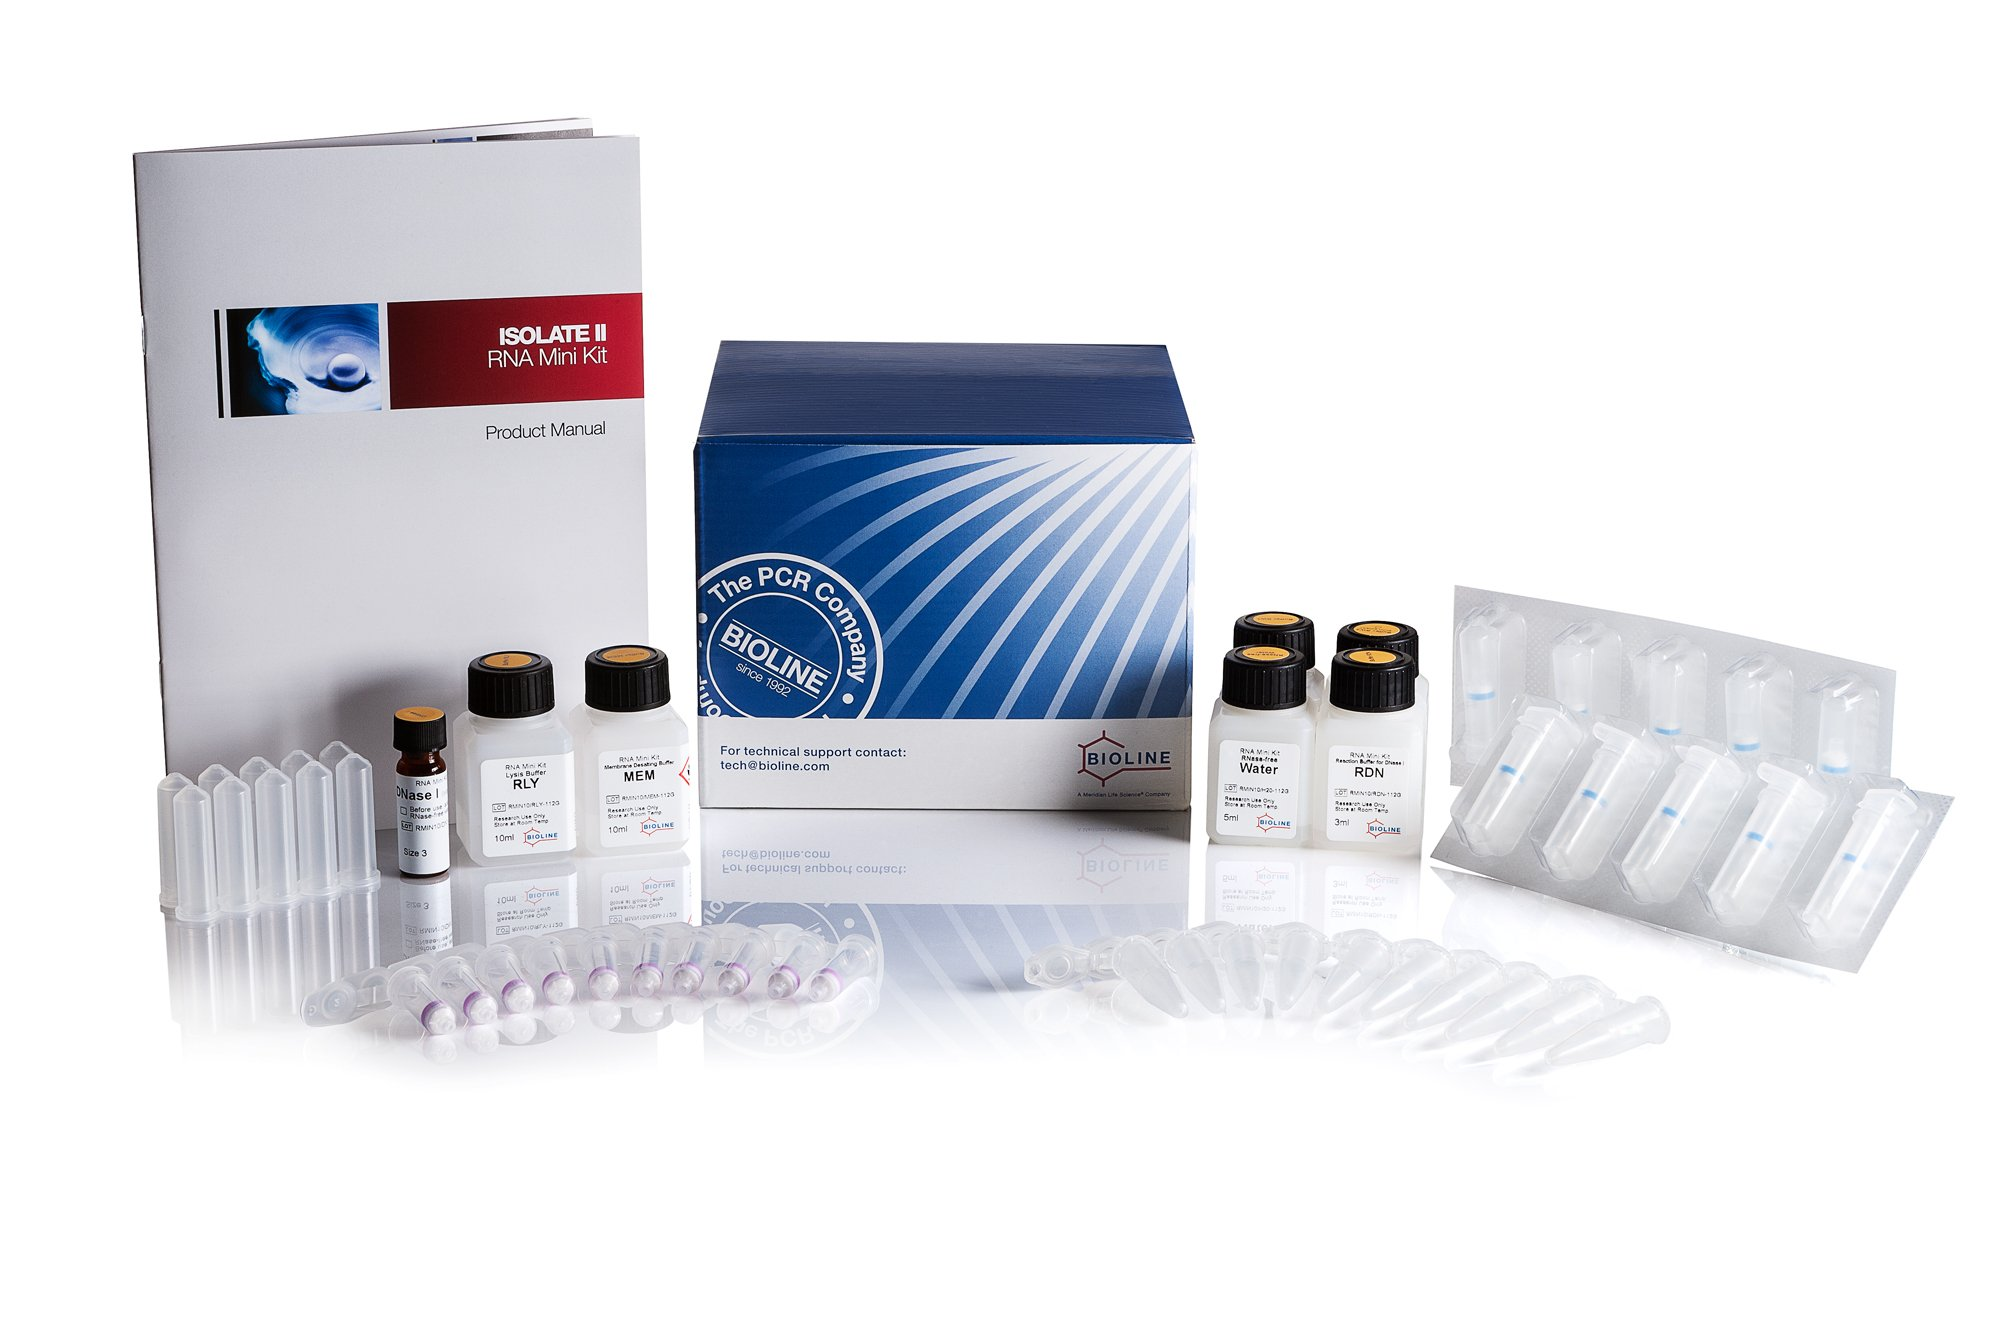 ISOLATE II PCR and Gel Kit 10 Preps, PCR product clean up Kit, PCR product cleanup, PCR product clean up protocol